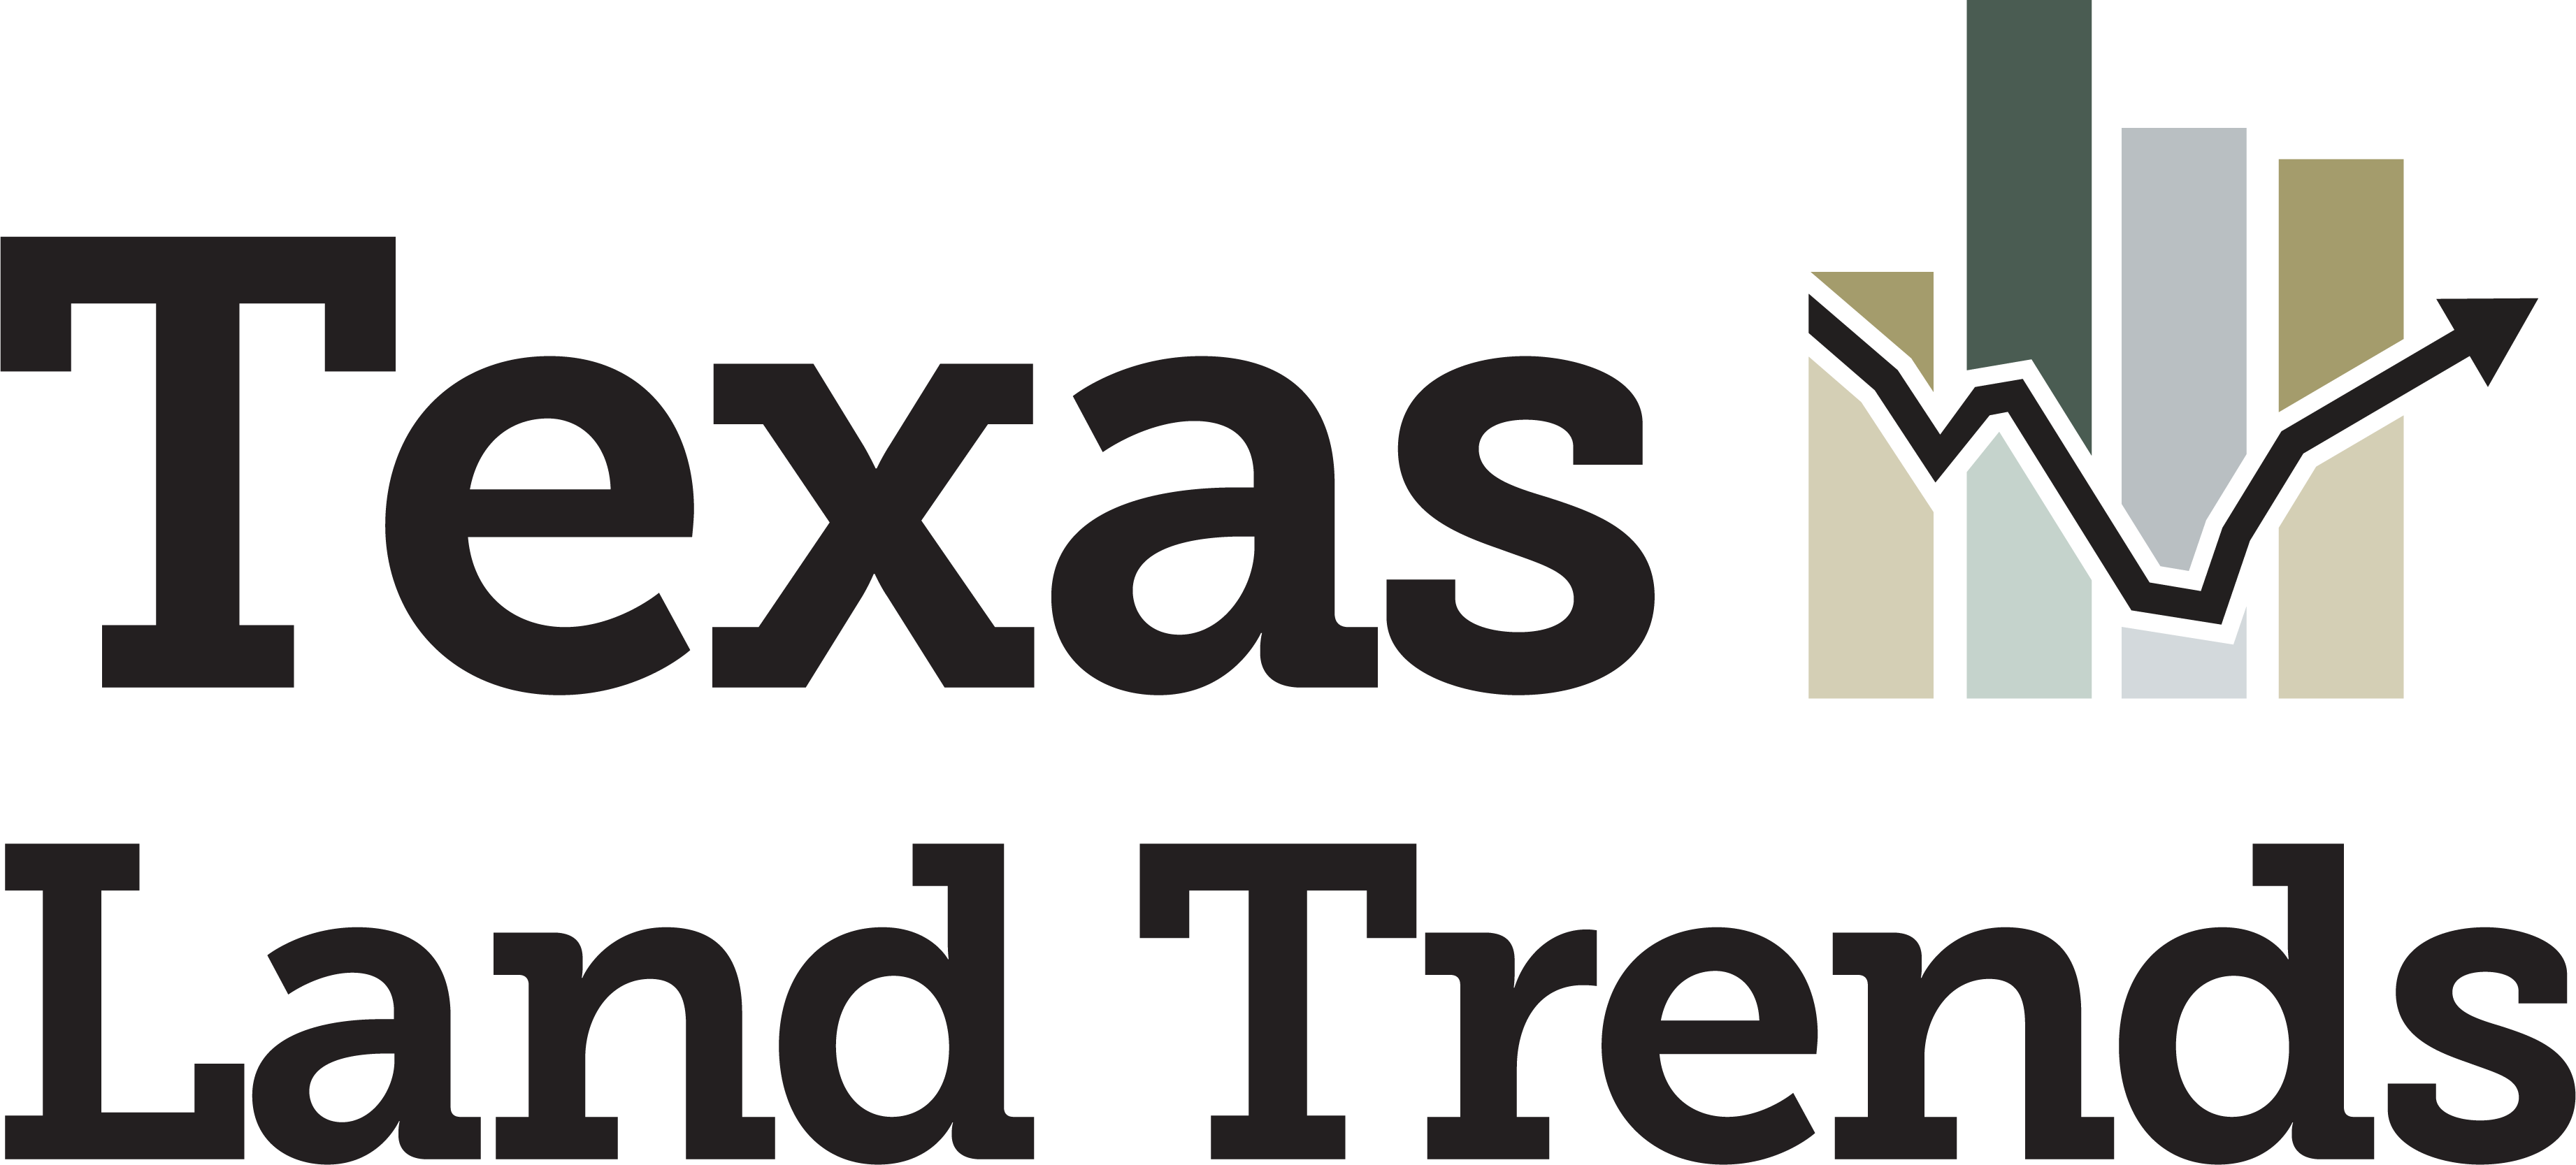 Texas Land Trends